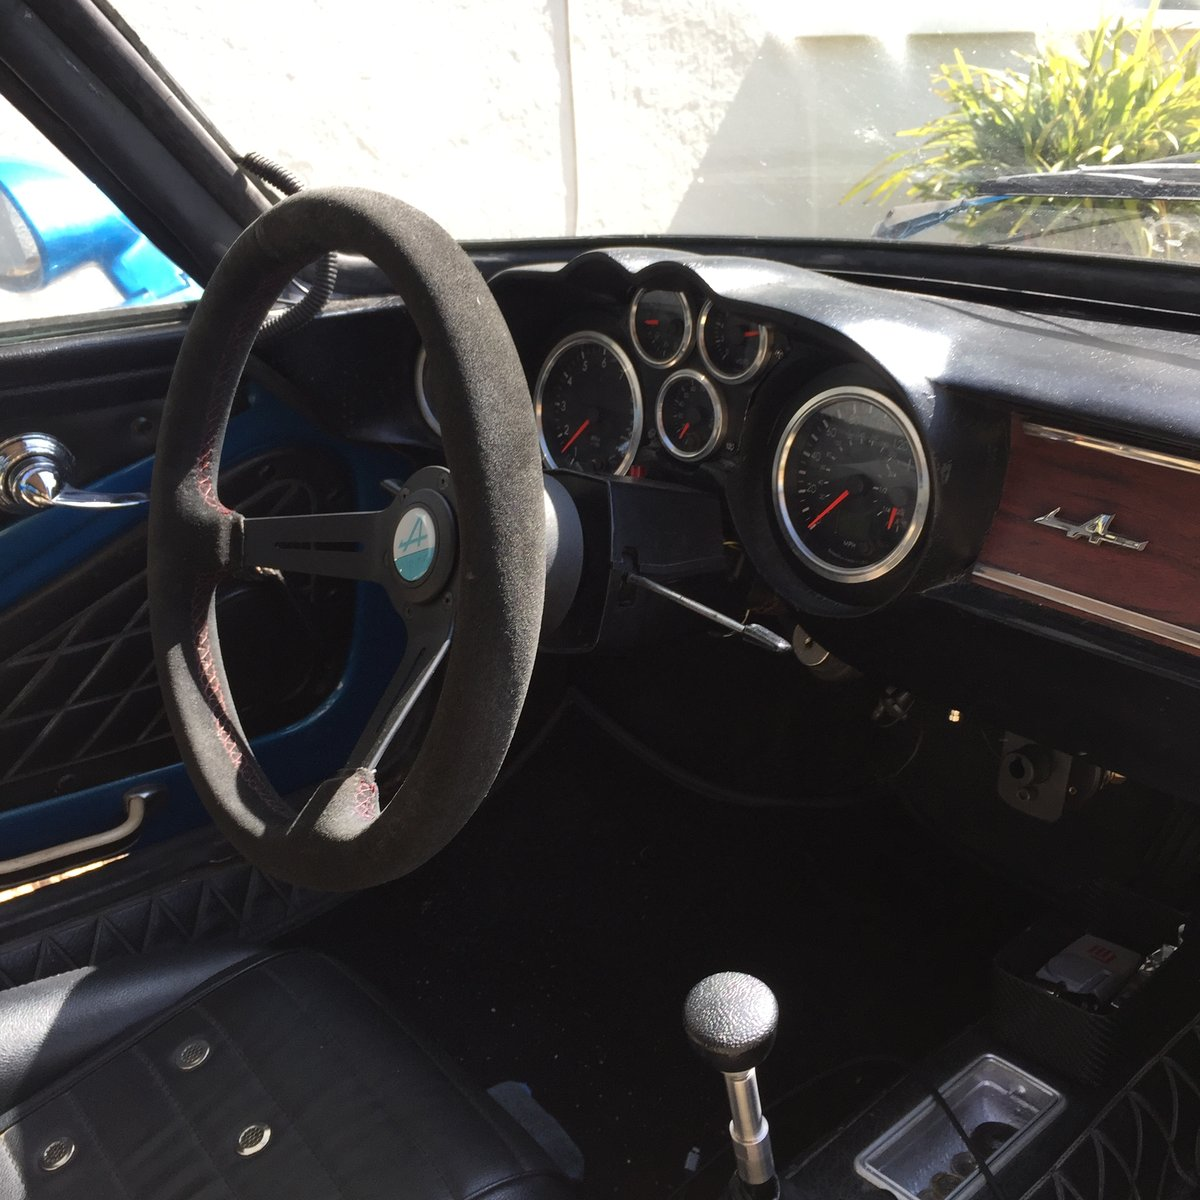 1971 Dinalpin Berlinette Alpine A110 For Sale (picture 6 of 6)